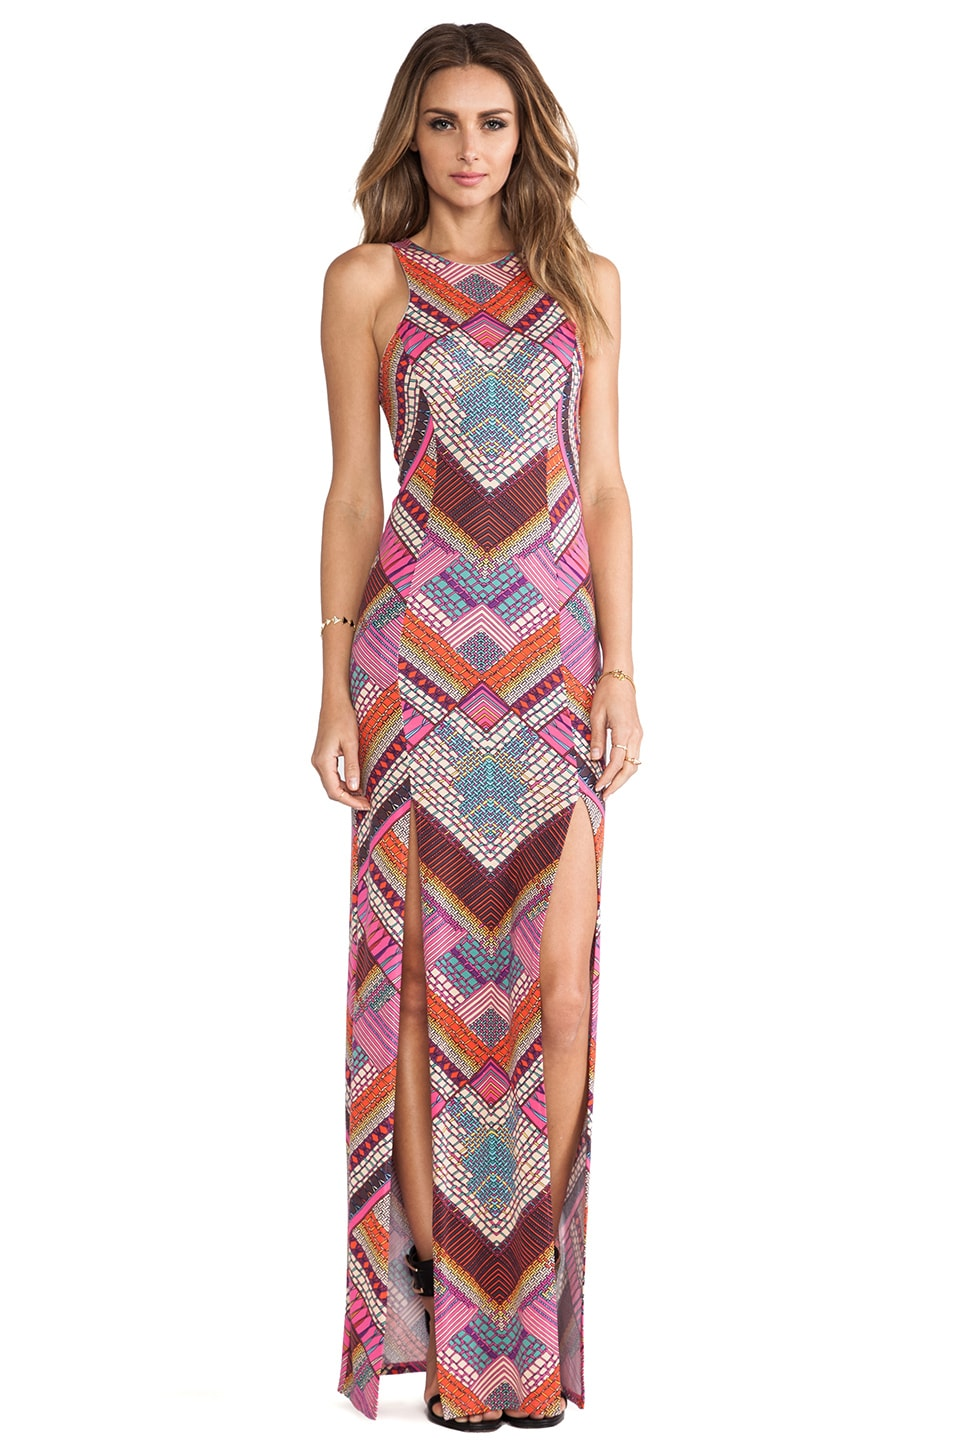 Mara Hoffman High Slit Maxi Dress in Kasuri Pink